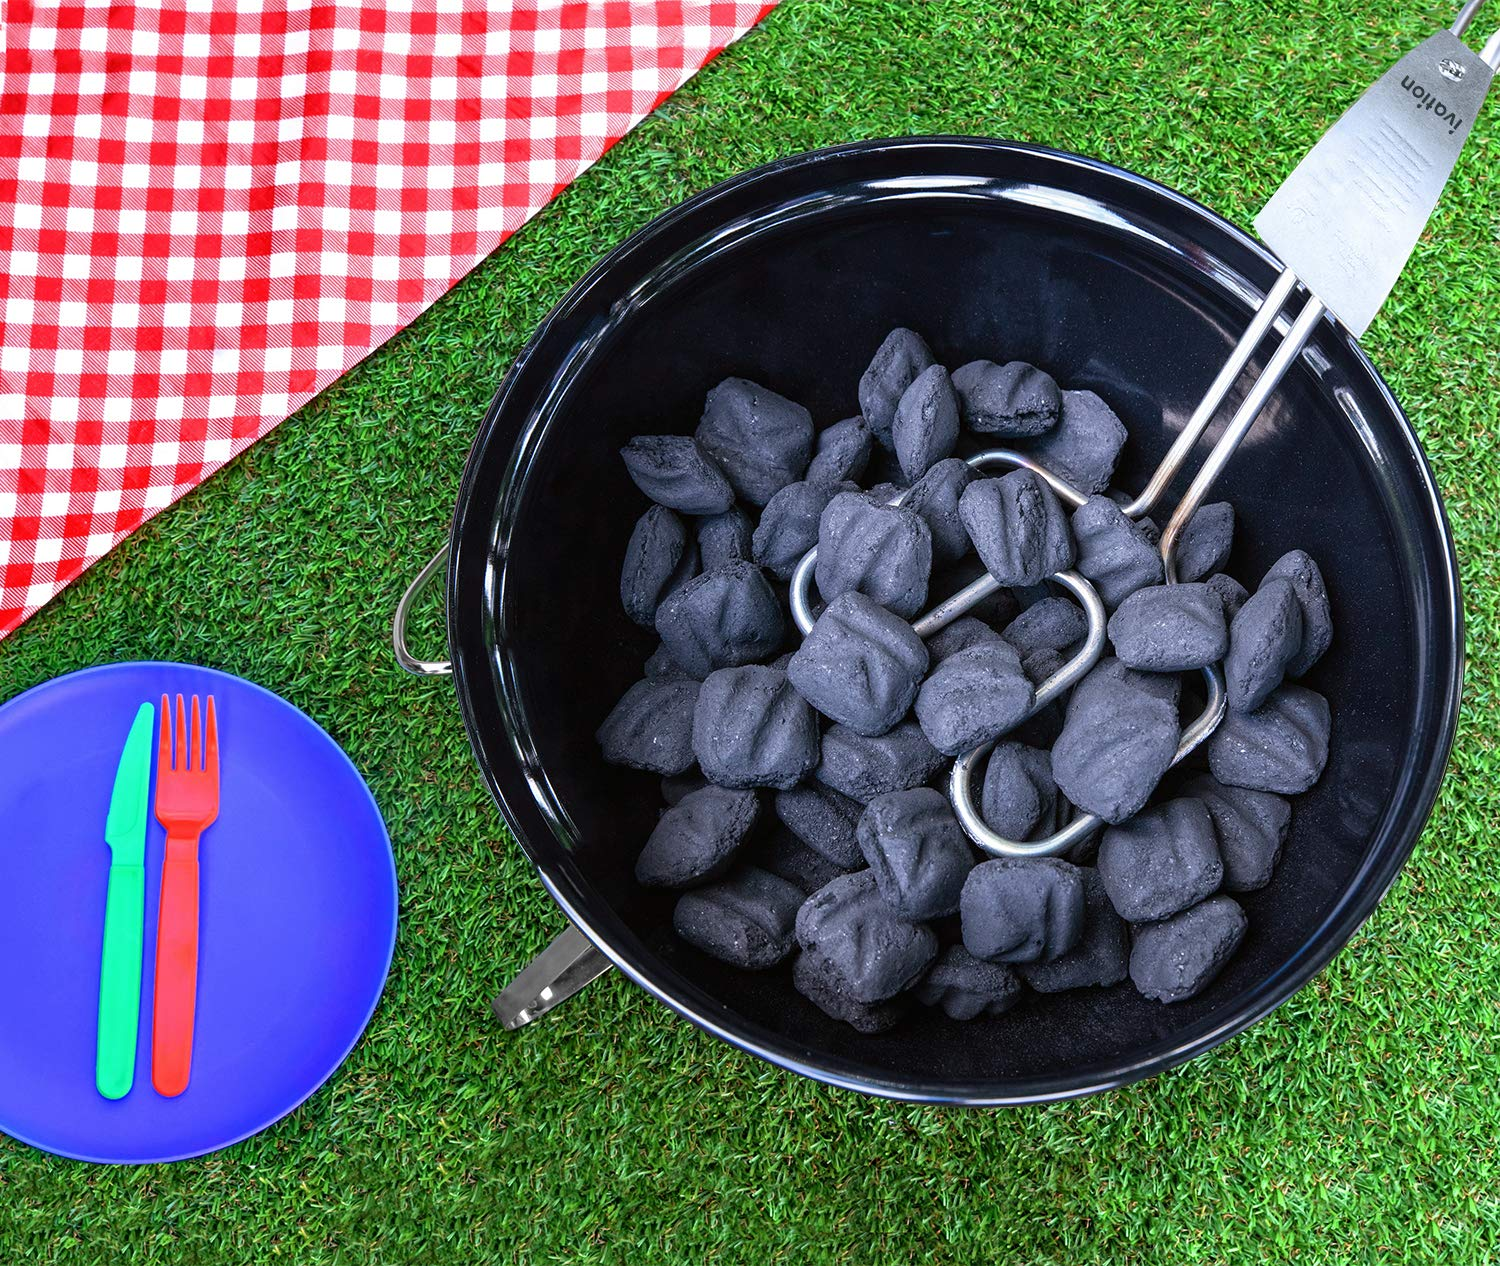 Ivation Premium 500W Electric Charcoal Starter – Quickly & Easily Ignite BBQ Grills Without Lighter Fluid or Matches – Double-Ring Design with Longer, Angled Handle Safely Heats in Just 6 Minutes by Ivation (Image #3)